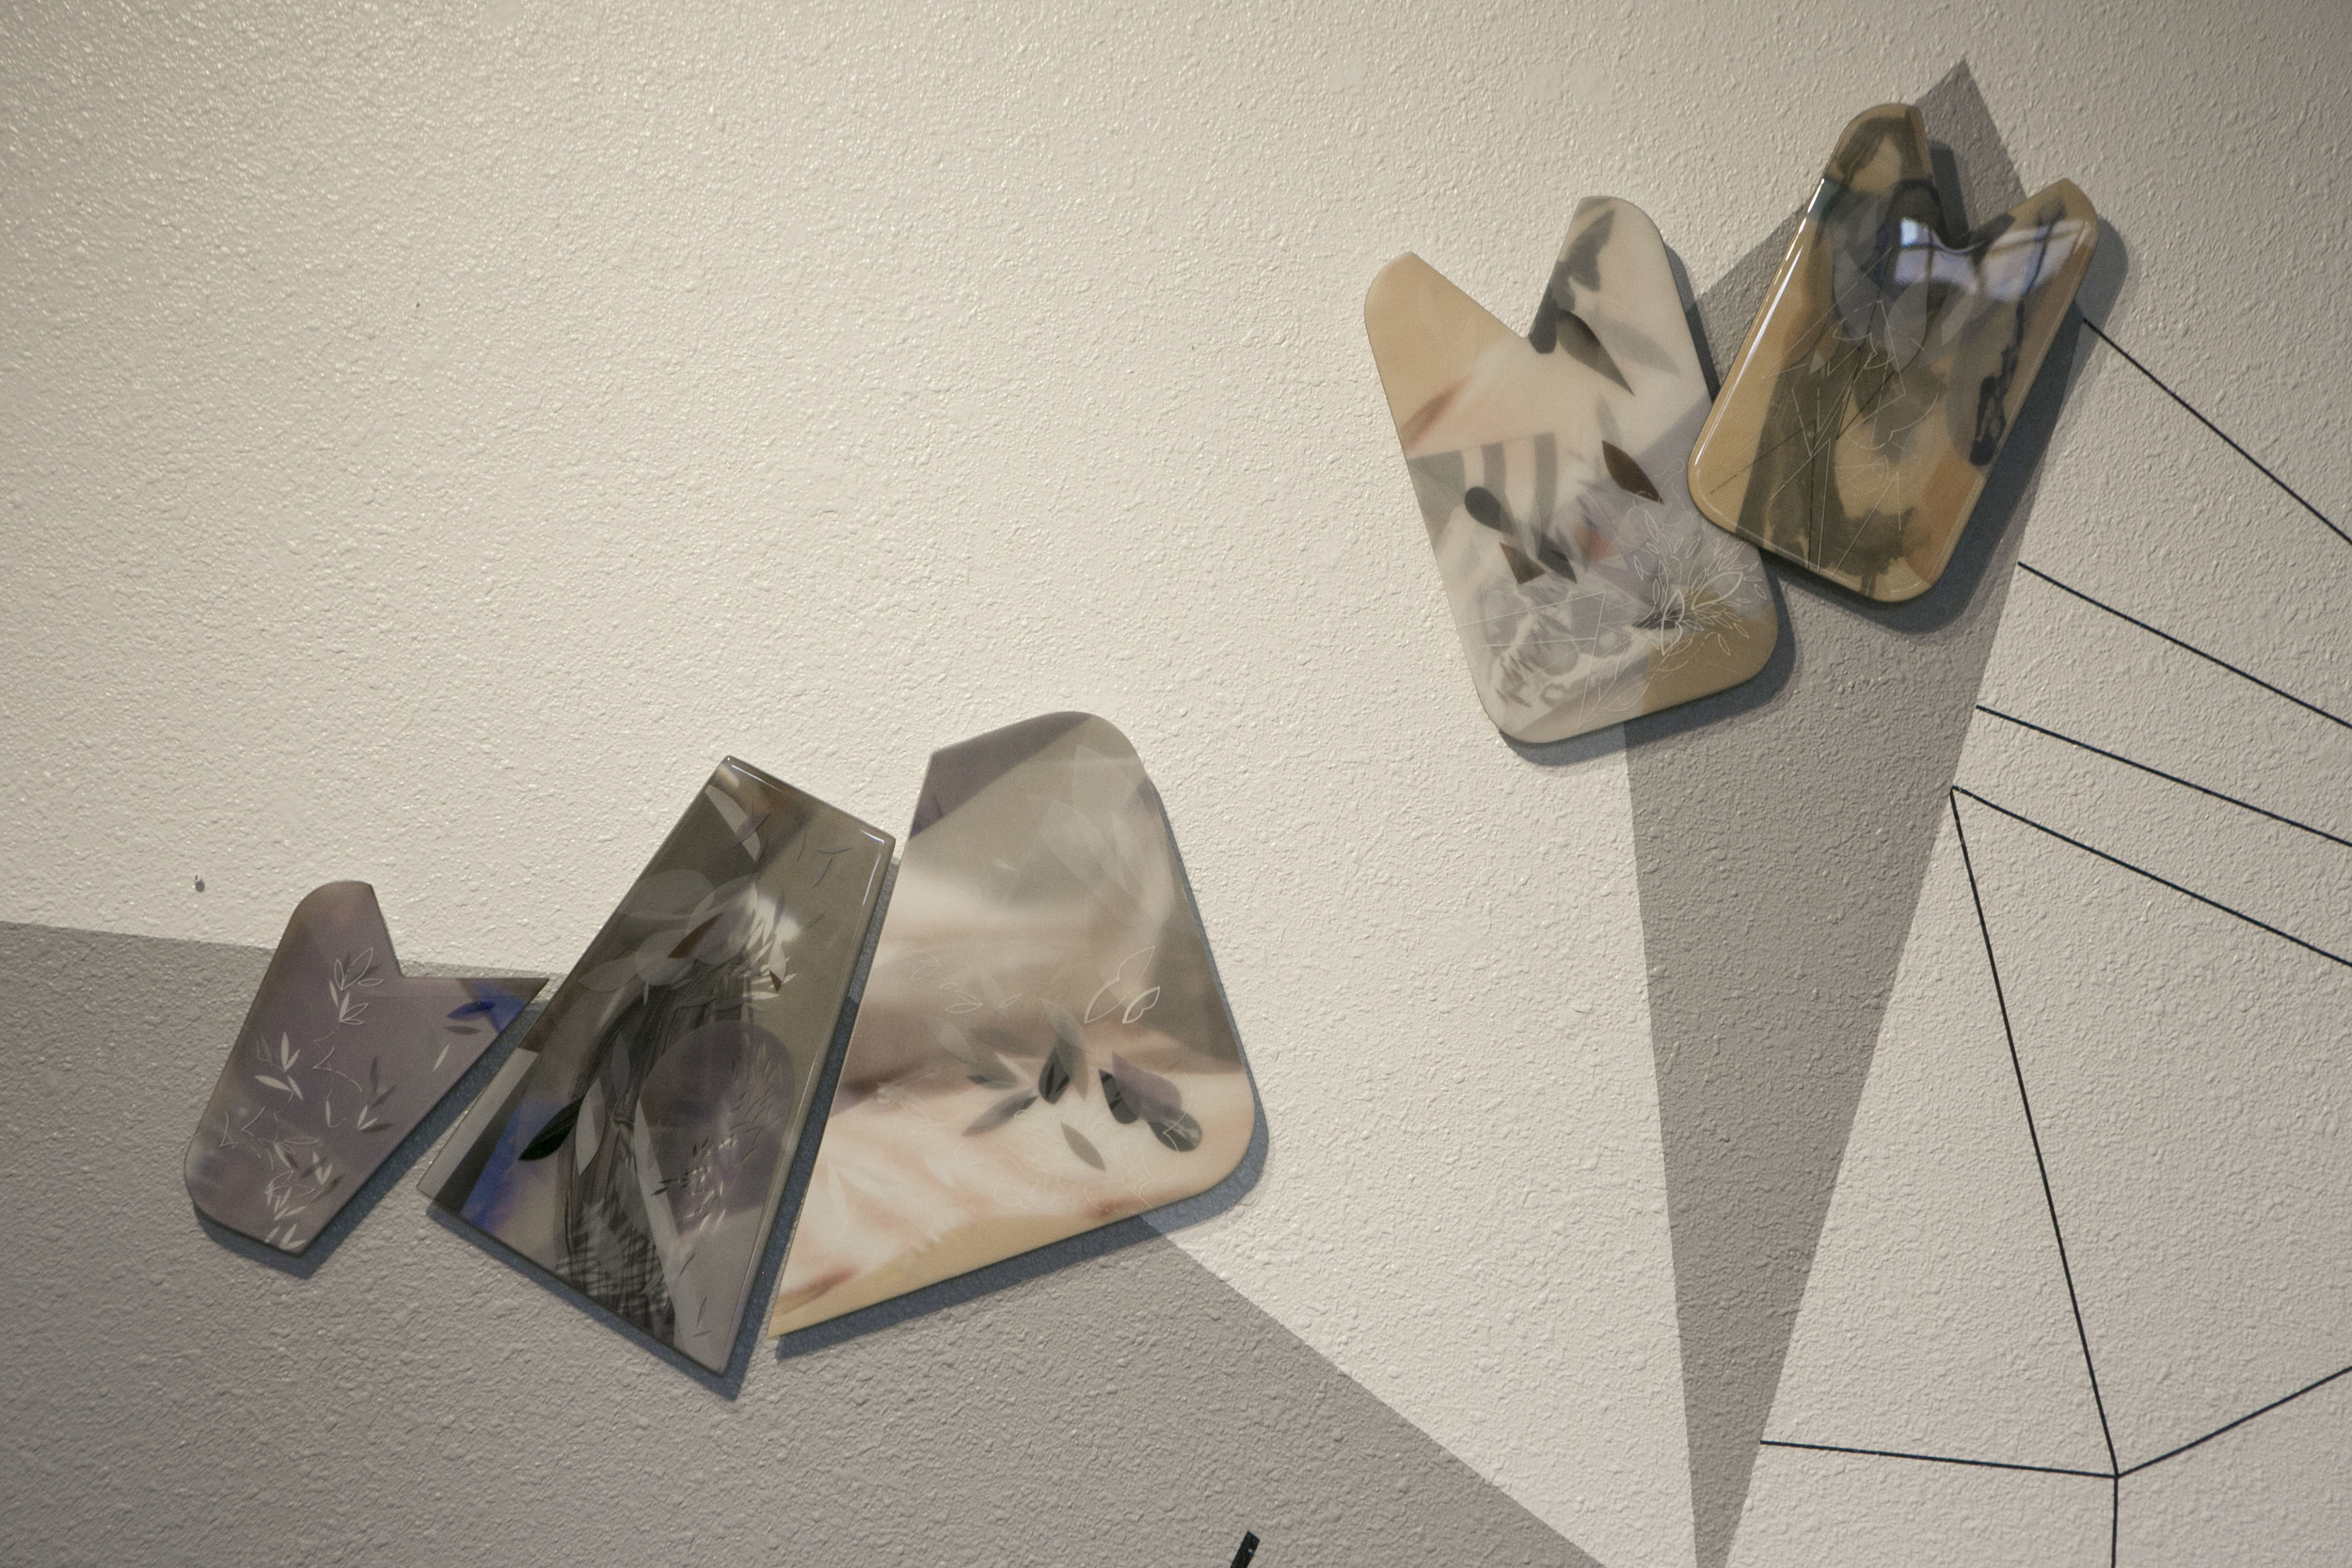 From left to right:  6.1   8x11 6.2   8x14 6.3   16x15 6.4   10x16  mixed media photography in resin